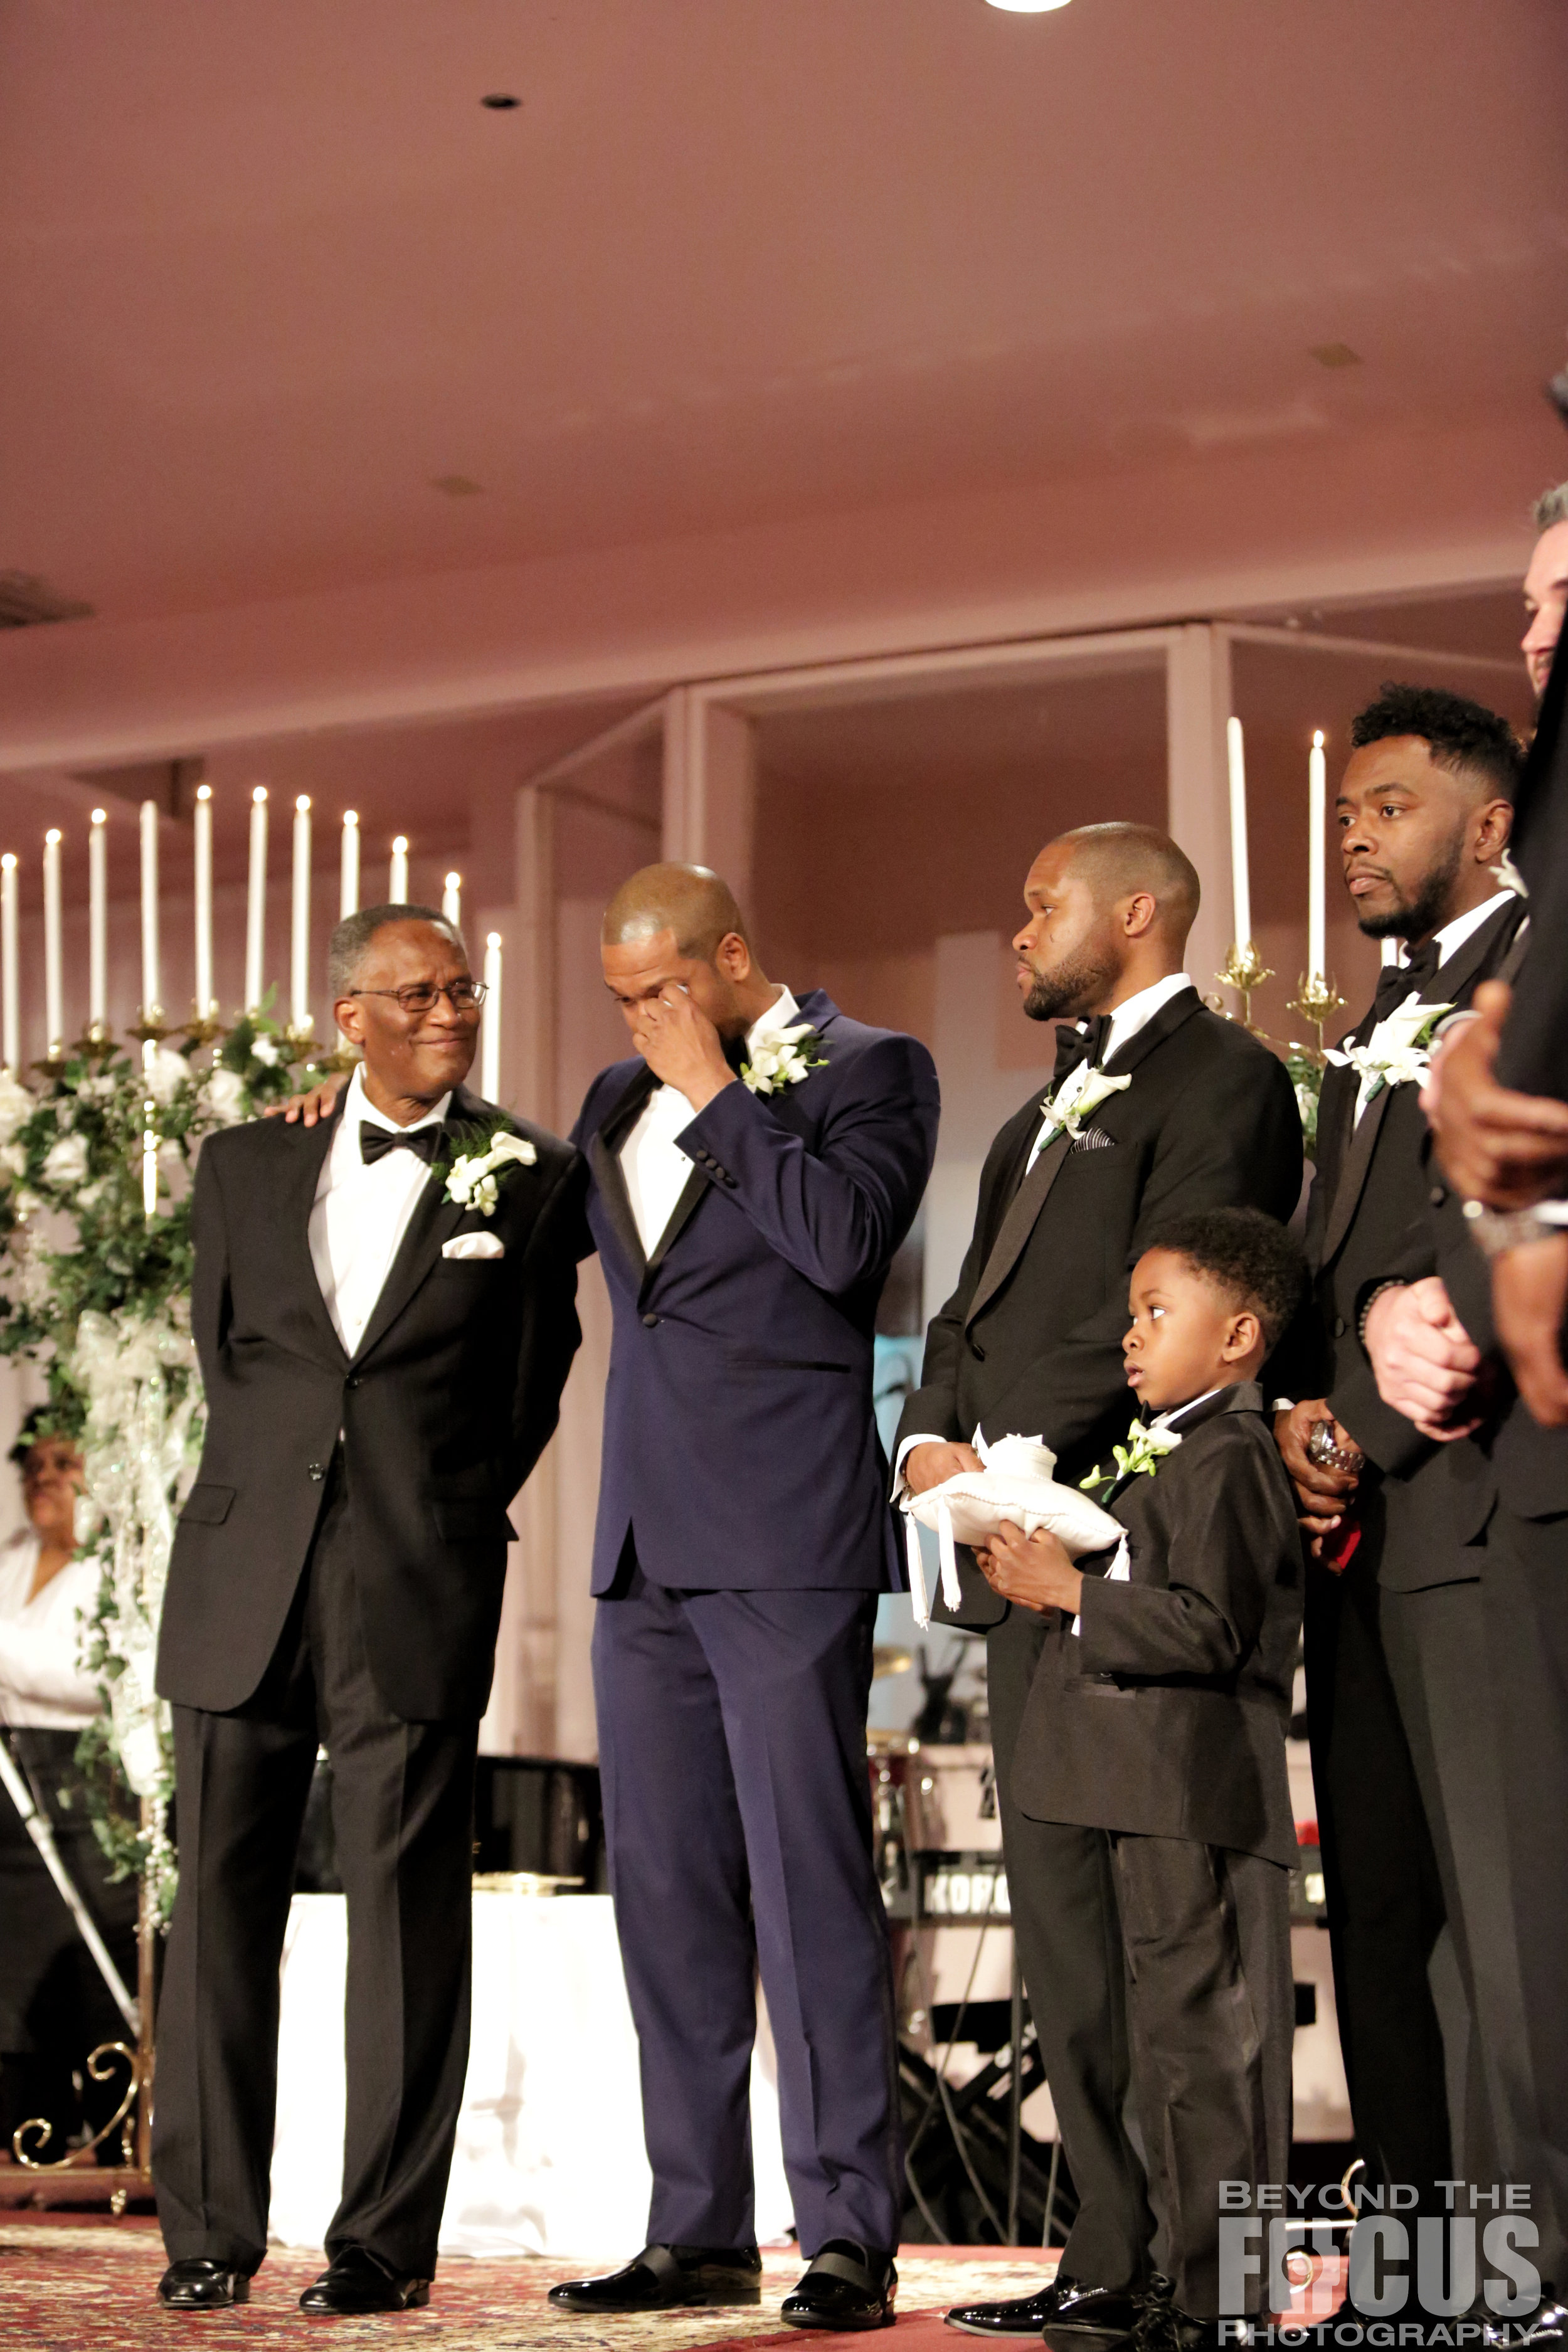 Matthews_Wedding_Ceremony_48.jpg